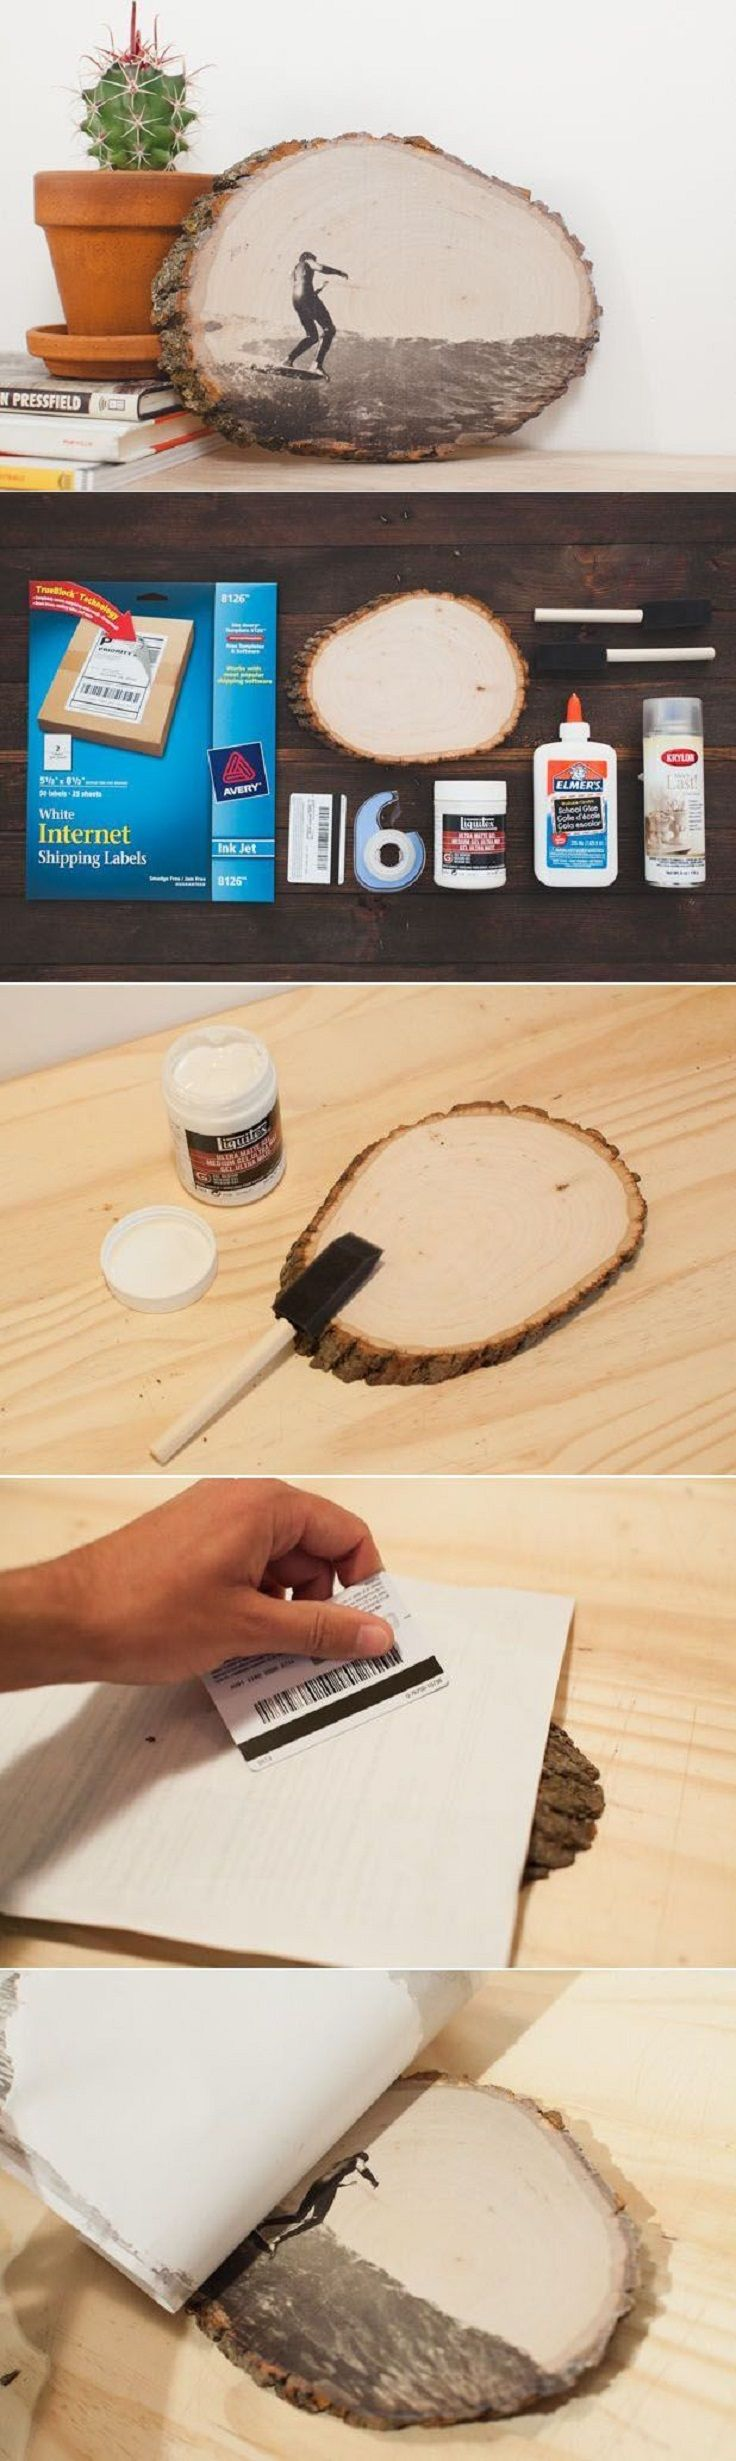 How to Transfer Ink to Wood More